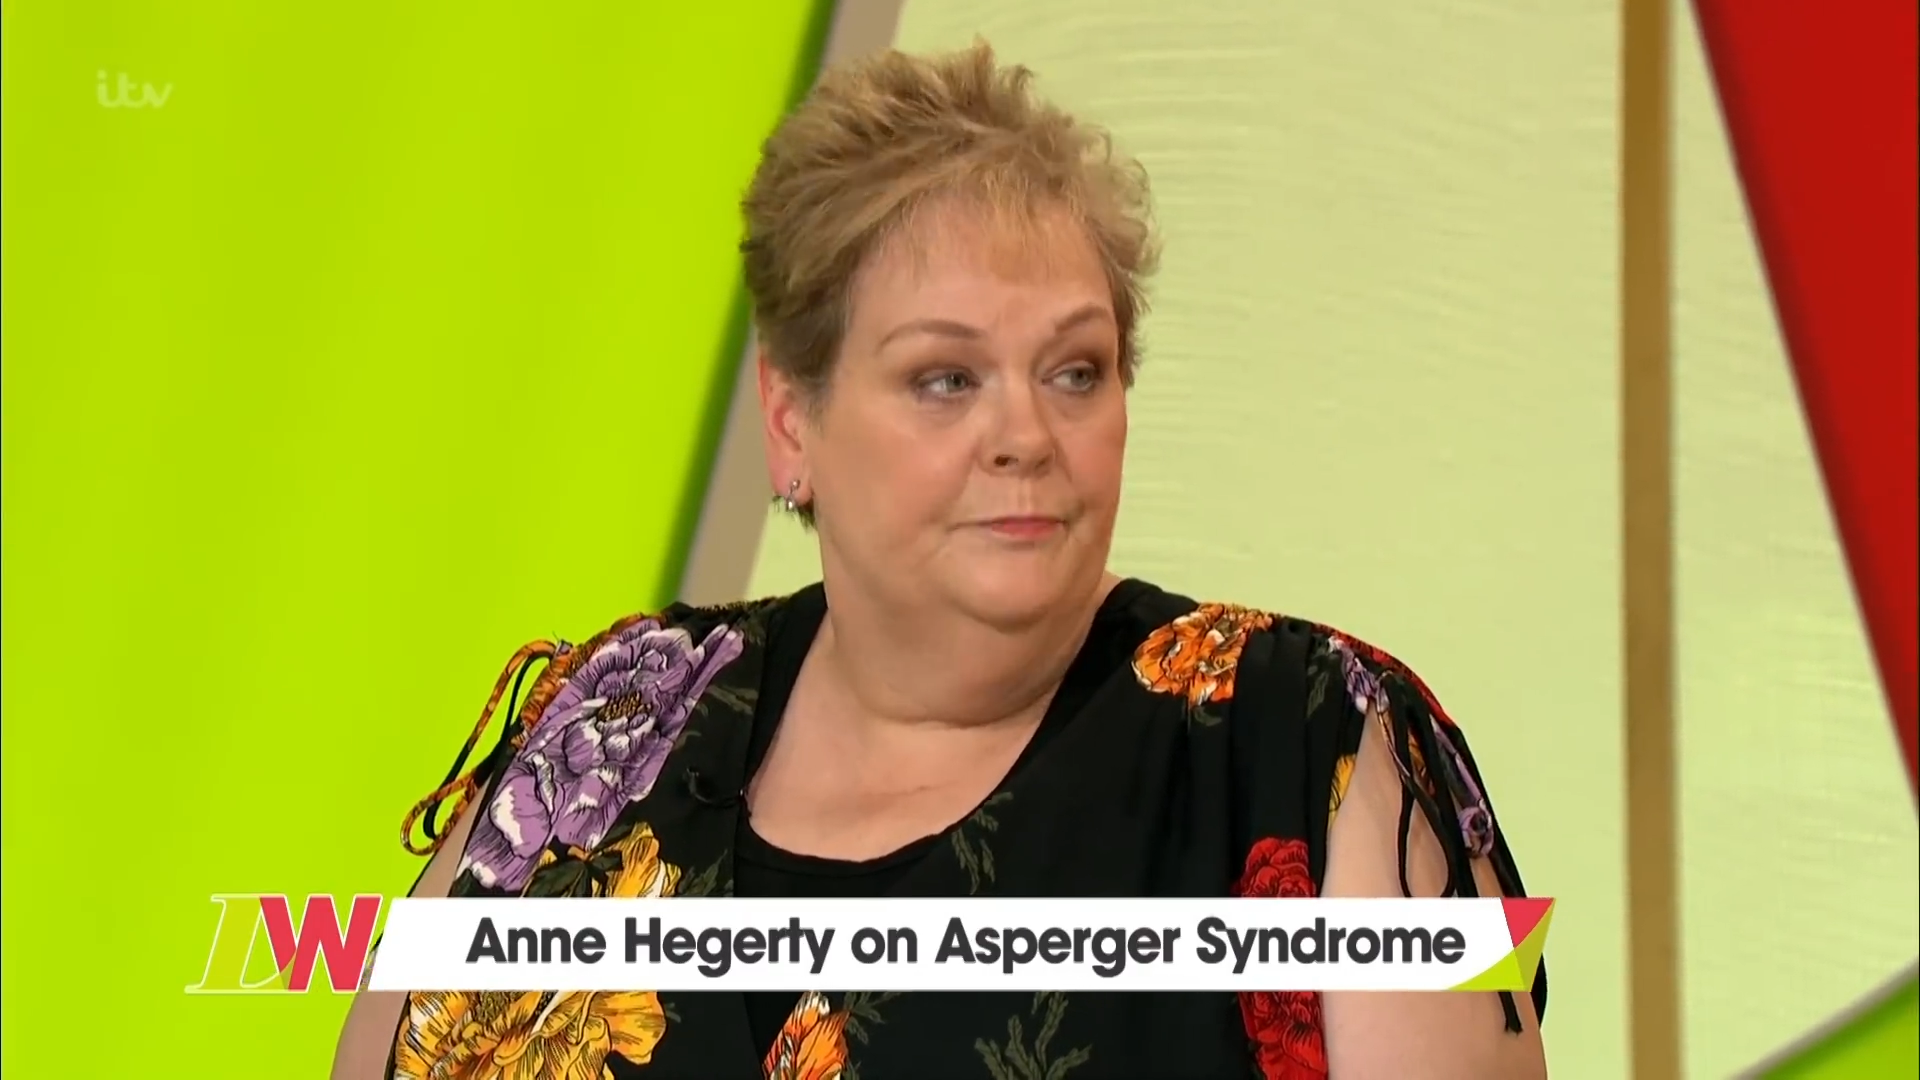 Anne Hegerty opens up about living with Asperger's